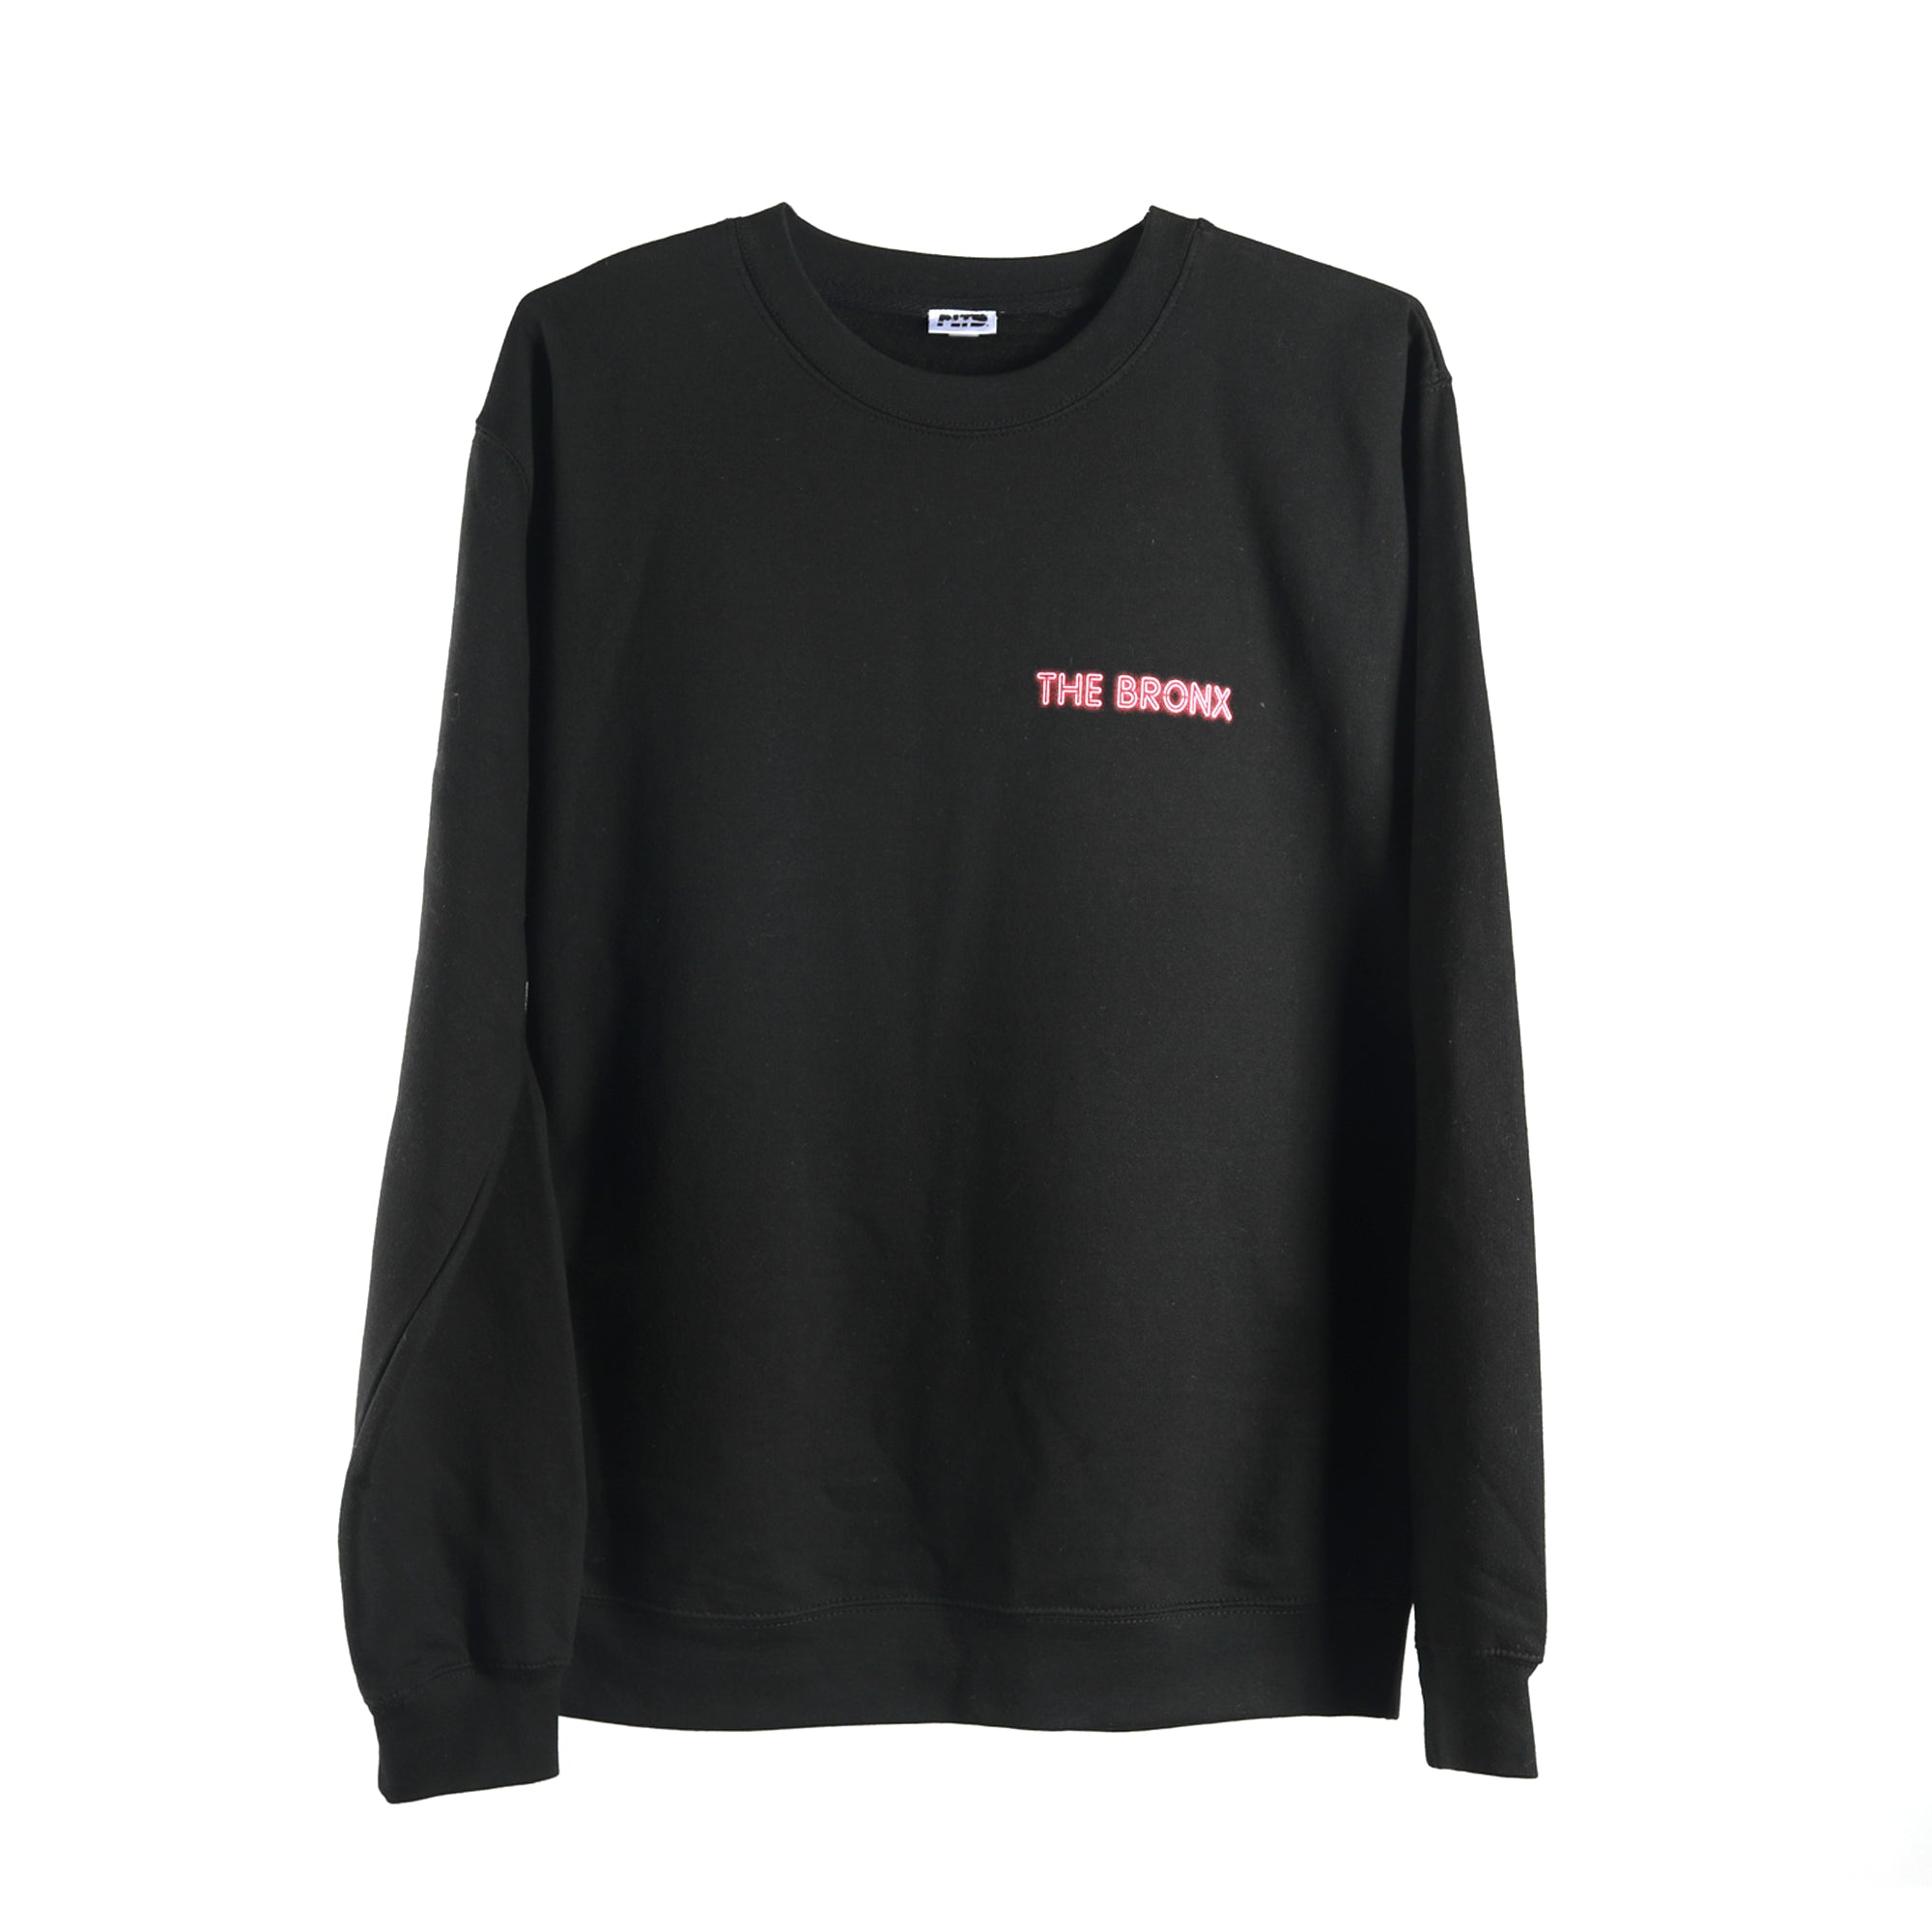 If It Wasn't For The Bronx - Black Crewneck